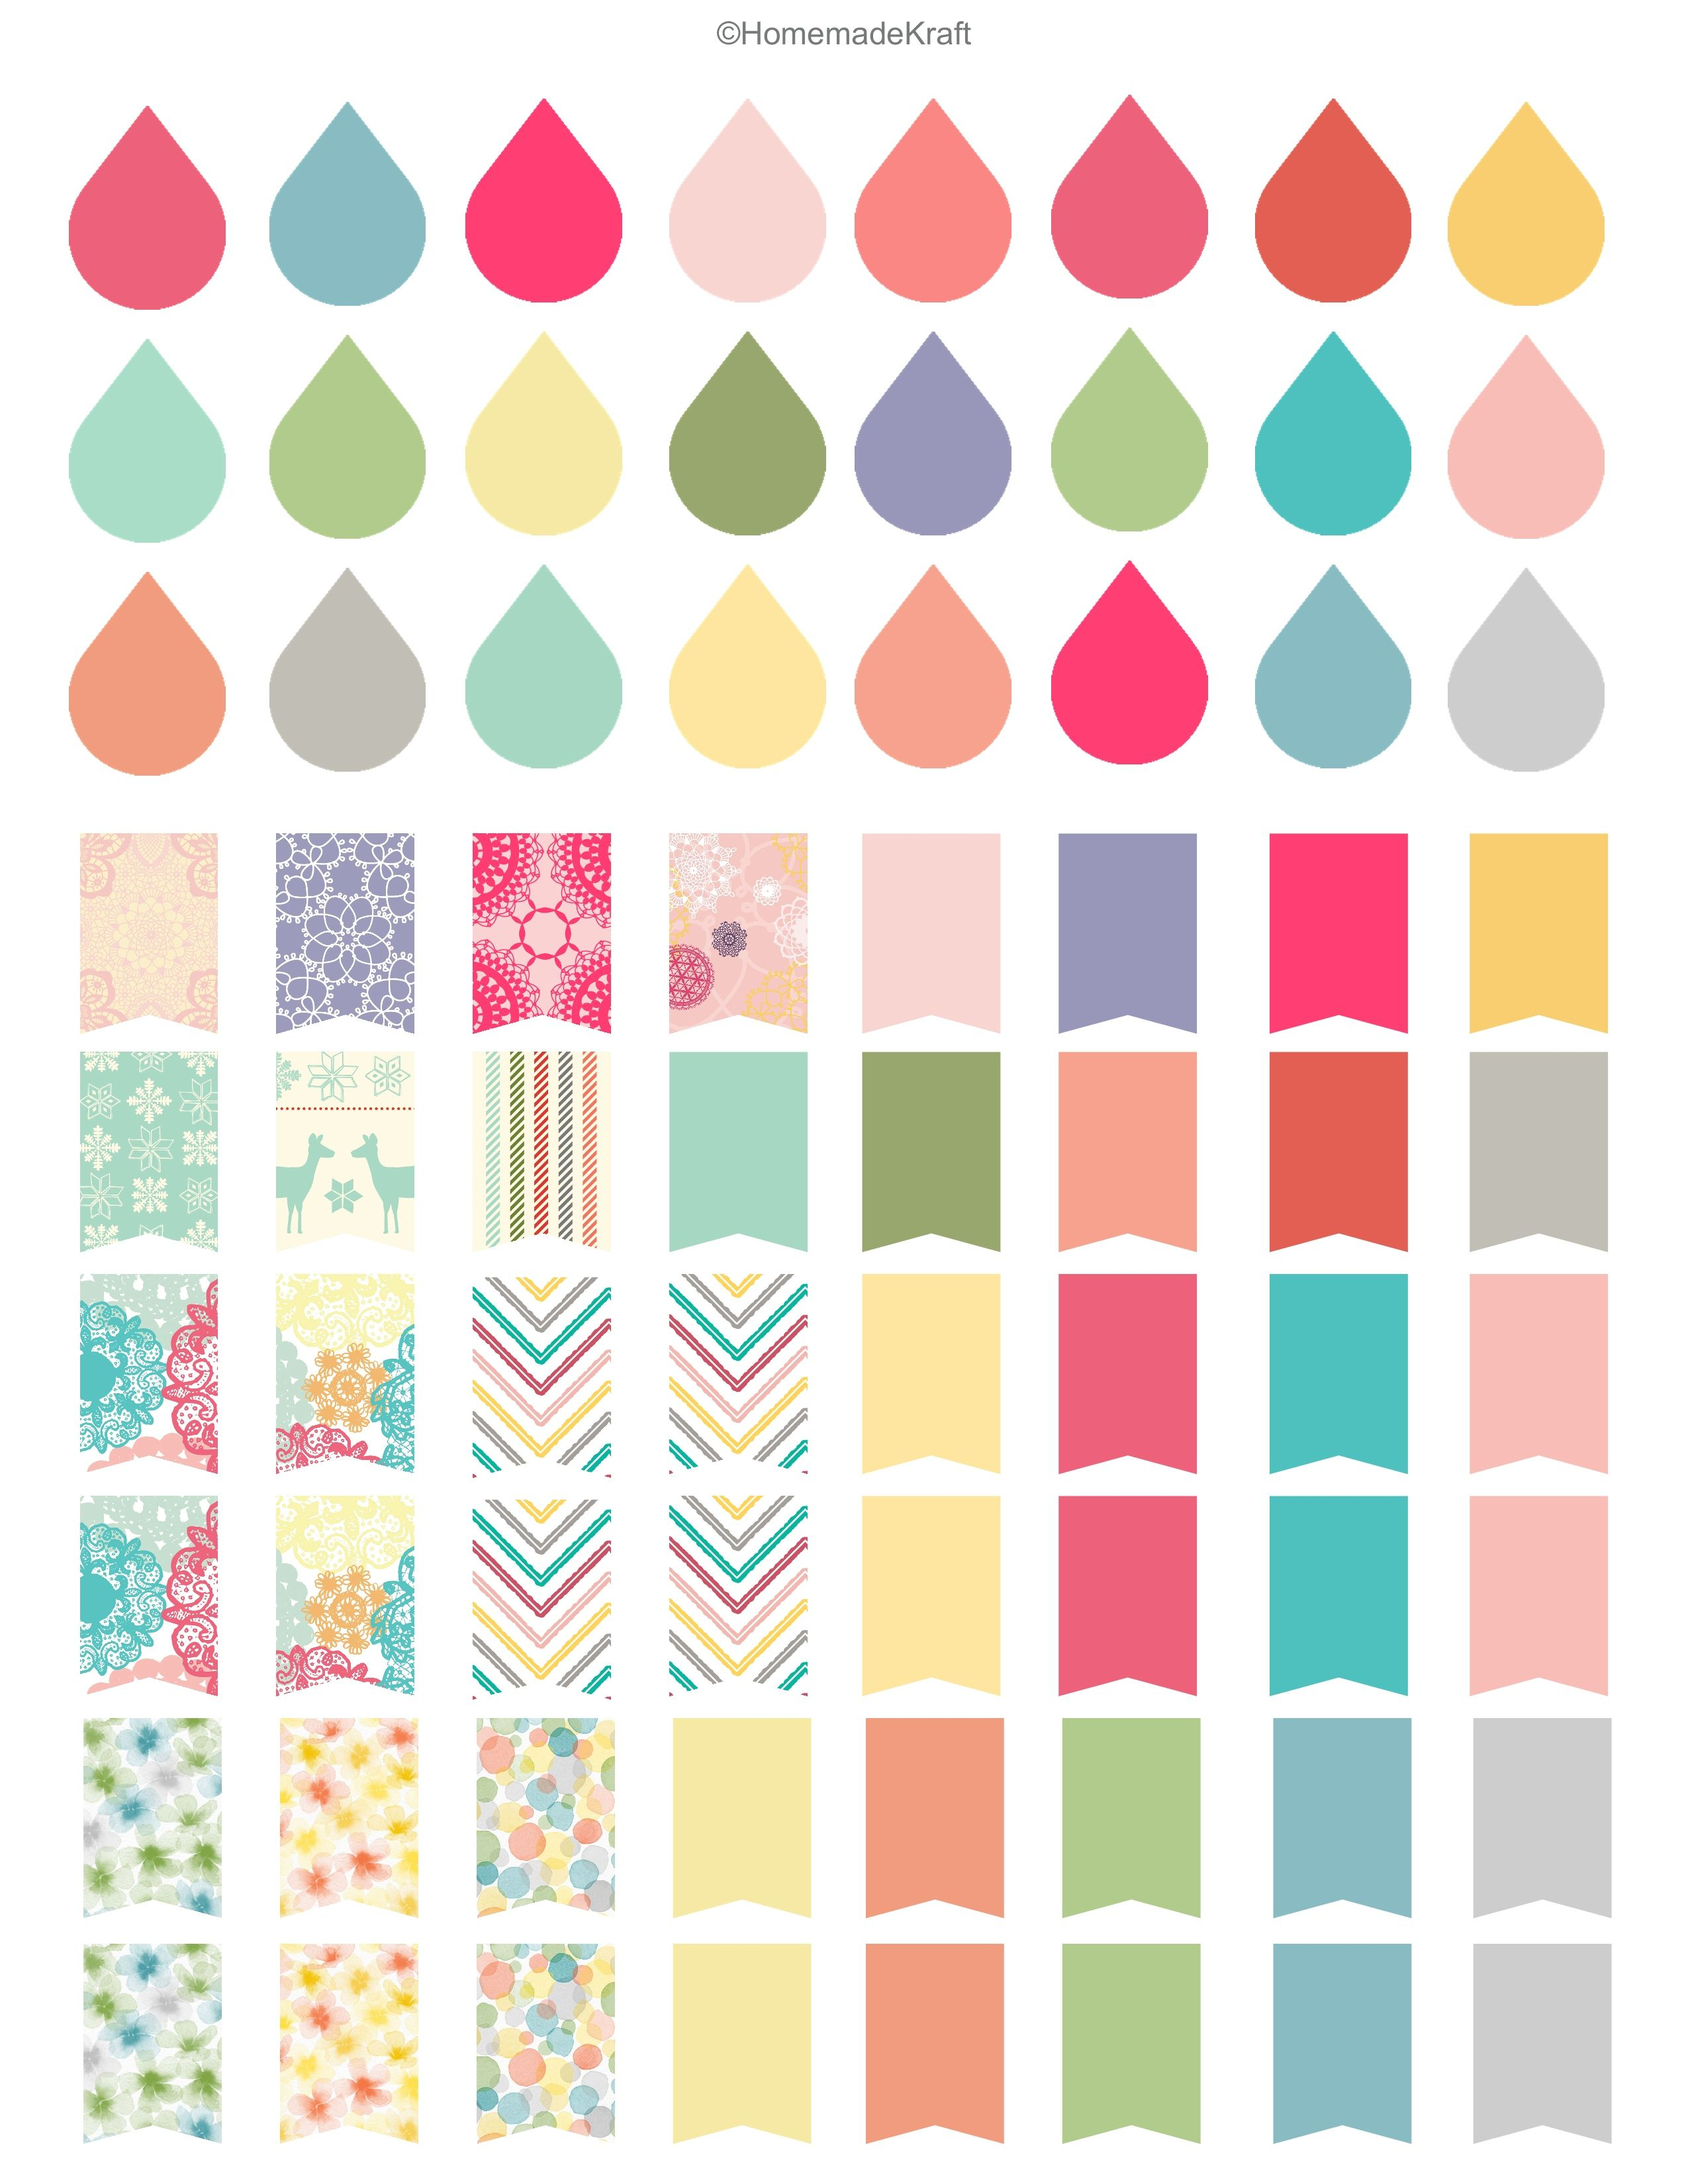 Free Sticker Printable! | Scrapbook Stuff | Pinterest | Printable - Free Printable Scrapbook Stuff